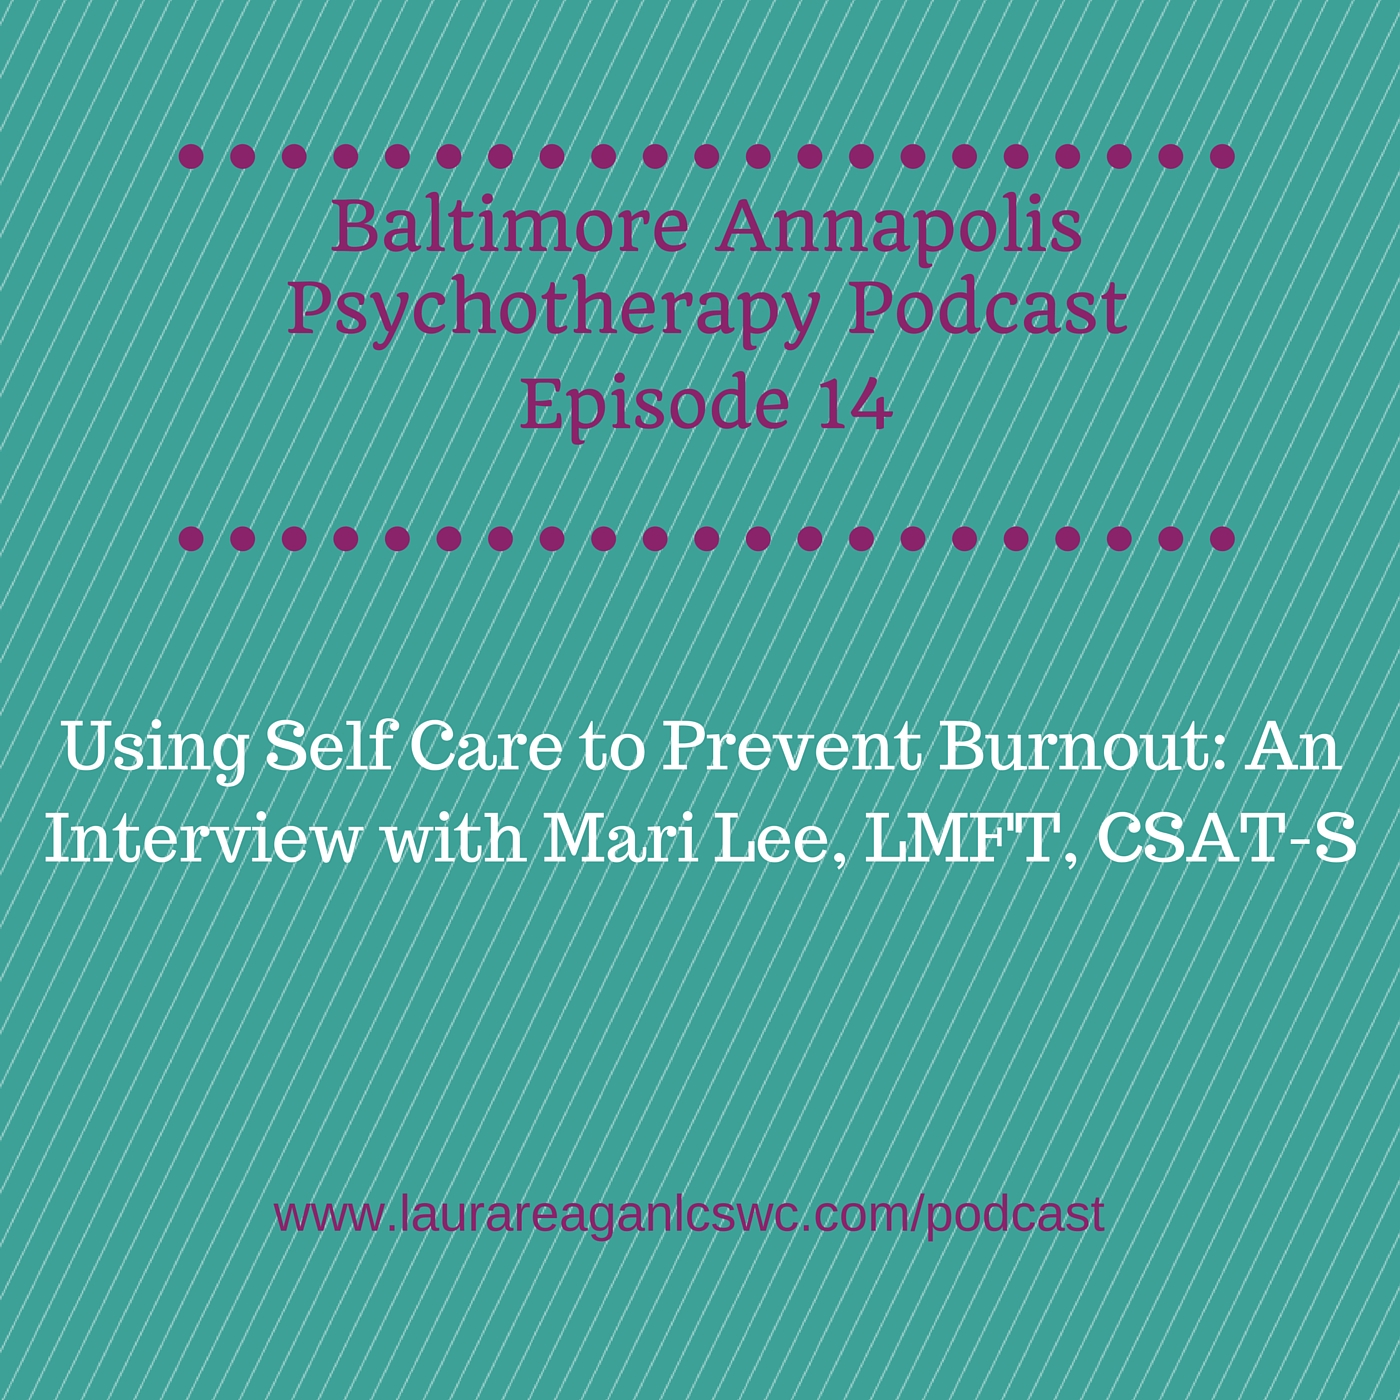 CLICK ON THE IMAGE TO LISTEN TO THE PODCAST EPISODE WITH MARI LEE, LMFT, CSAT-S!